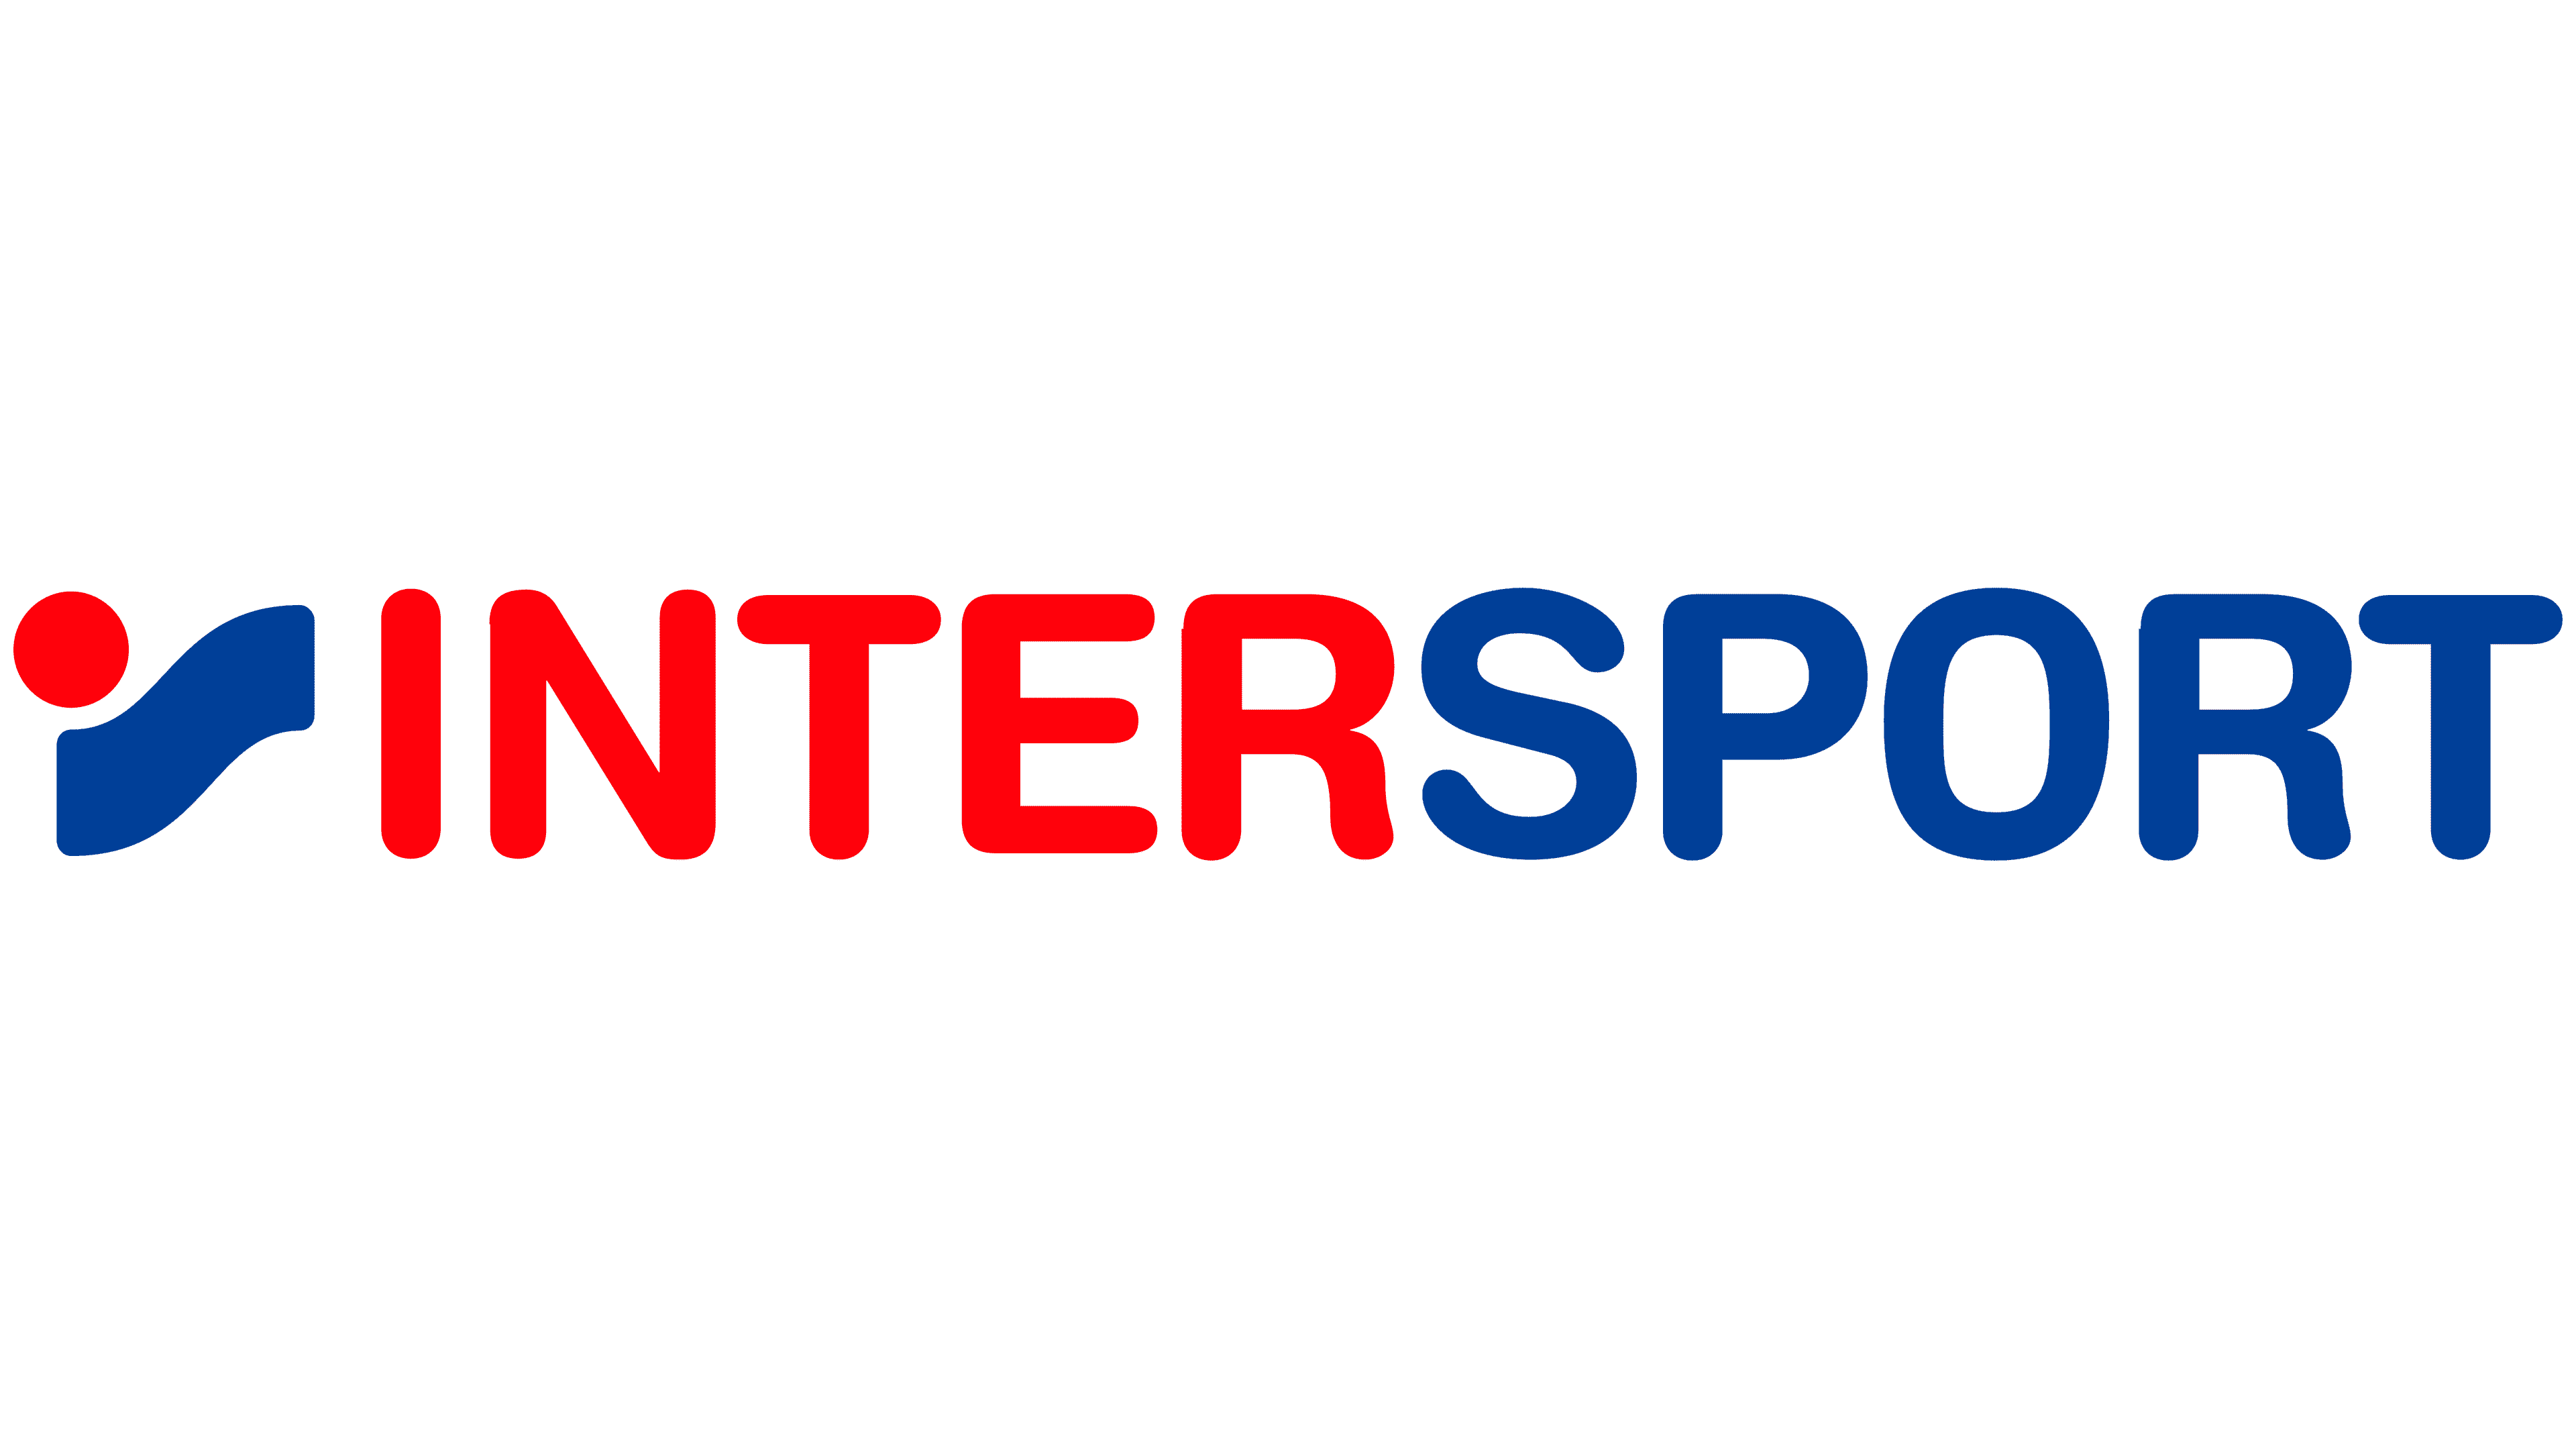 Meaning Intersport symbolhistory and logo and evolution yIfbY76gv